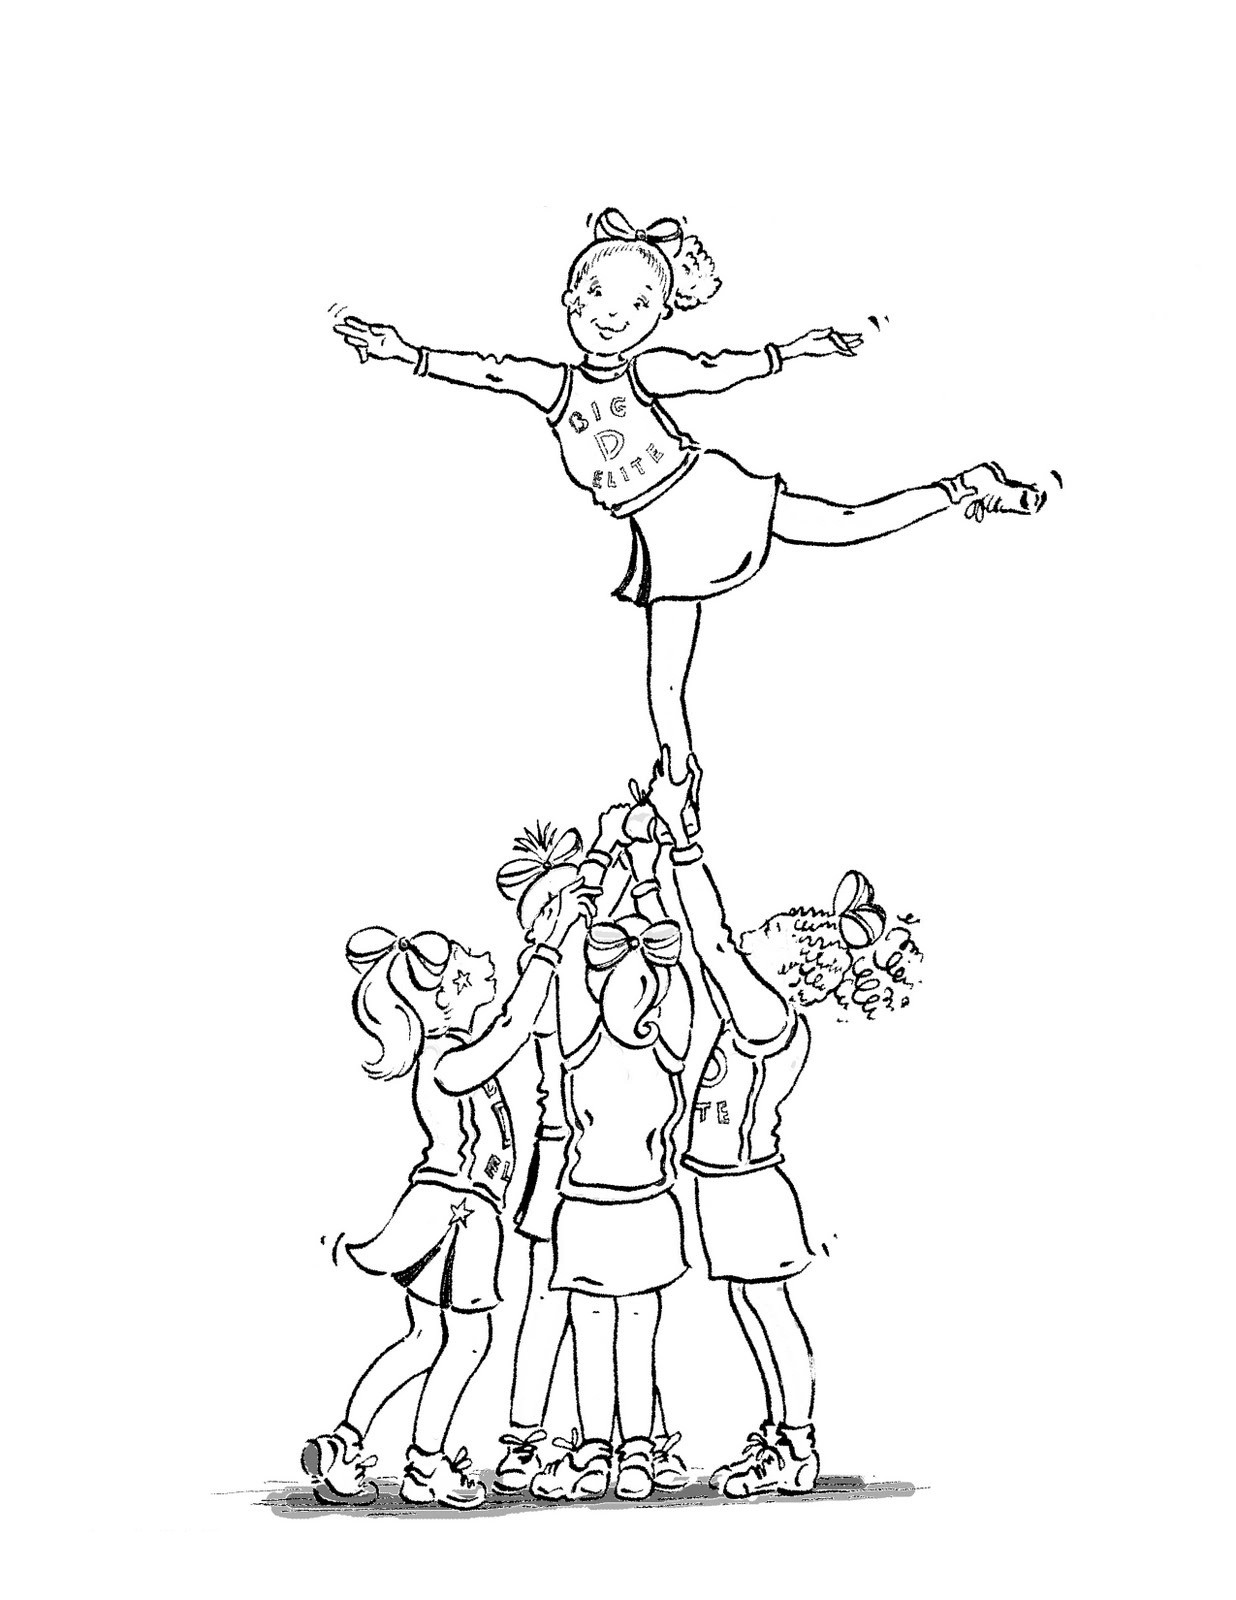 1236x1600 Cheerleading Coloring Pages Free Draw To Color